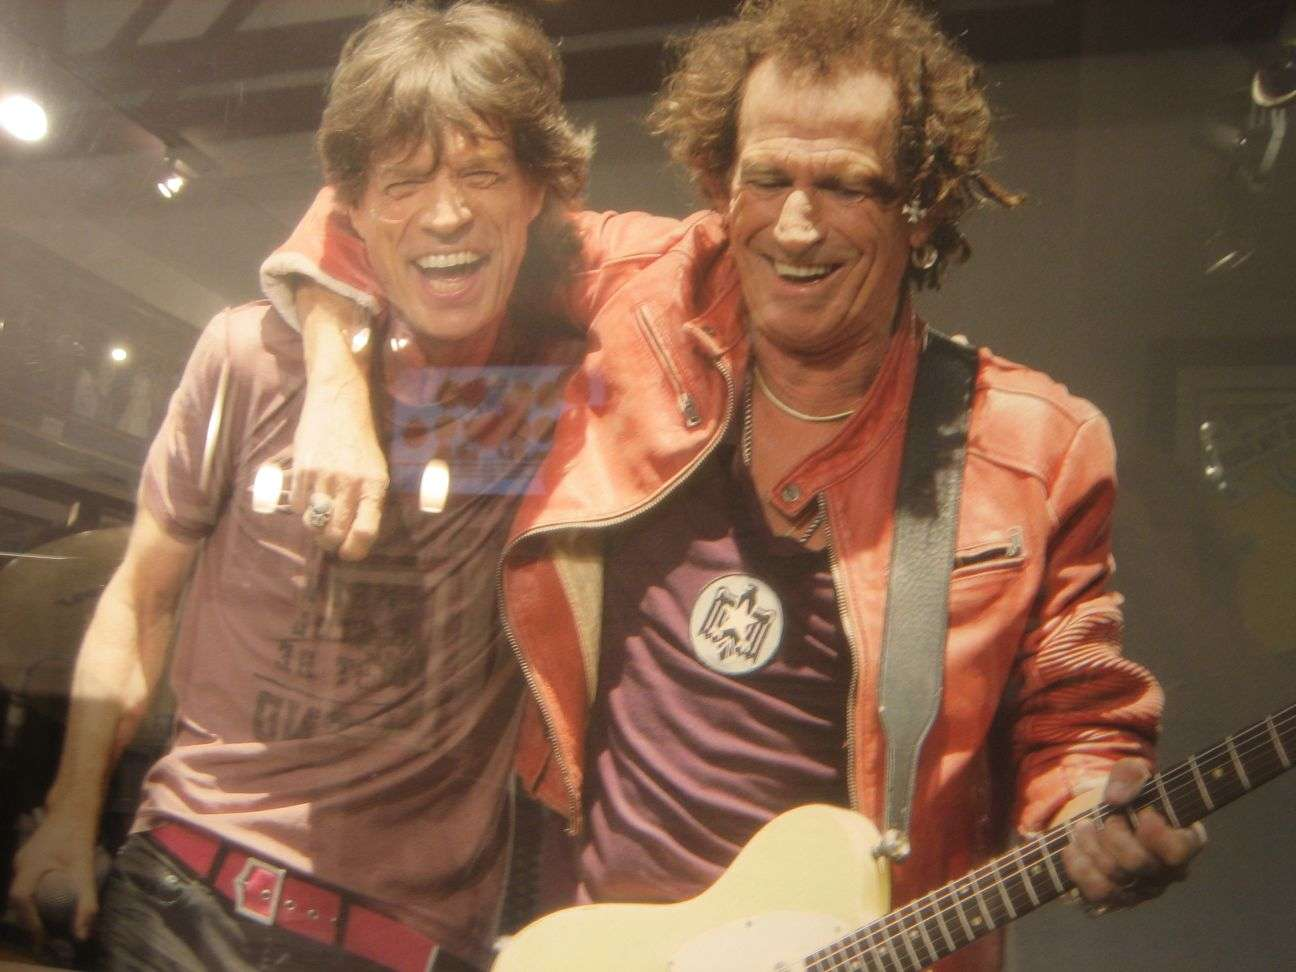 Mick Jagger (l.) and Keith Richards in 2009  courtesy Traute Magsig (CC 2.0)